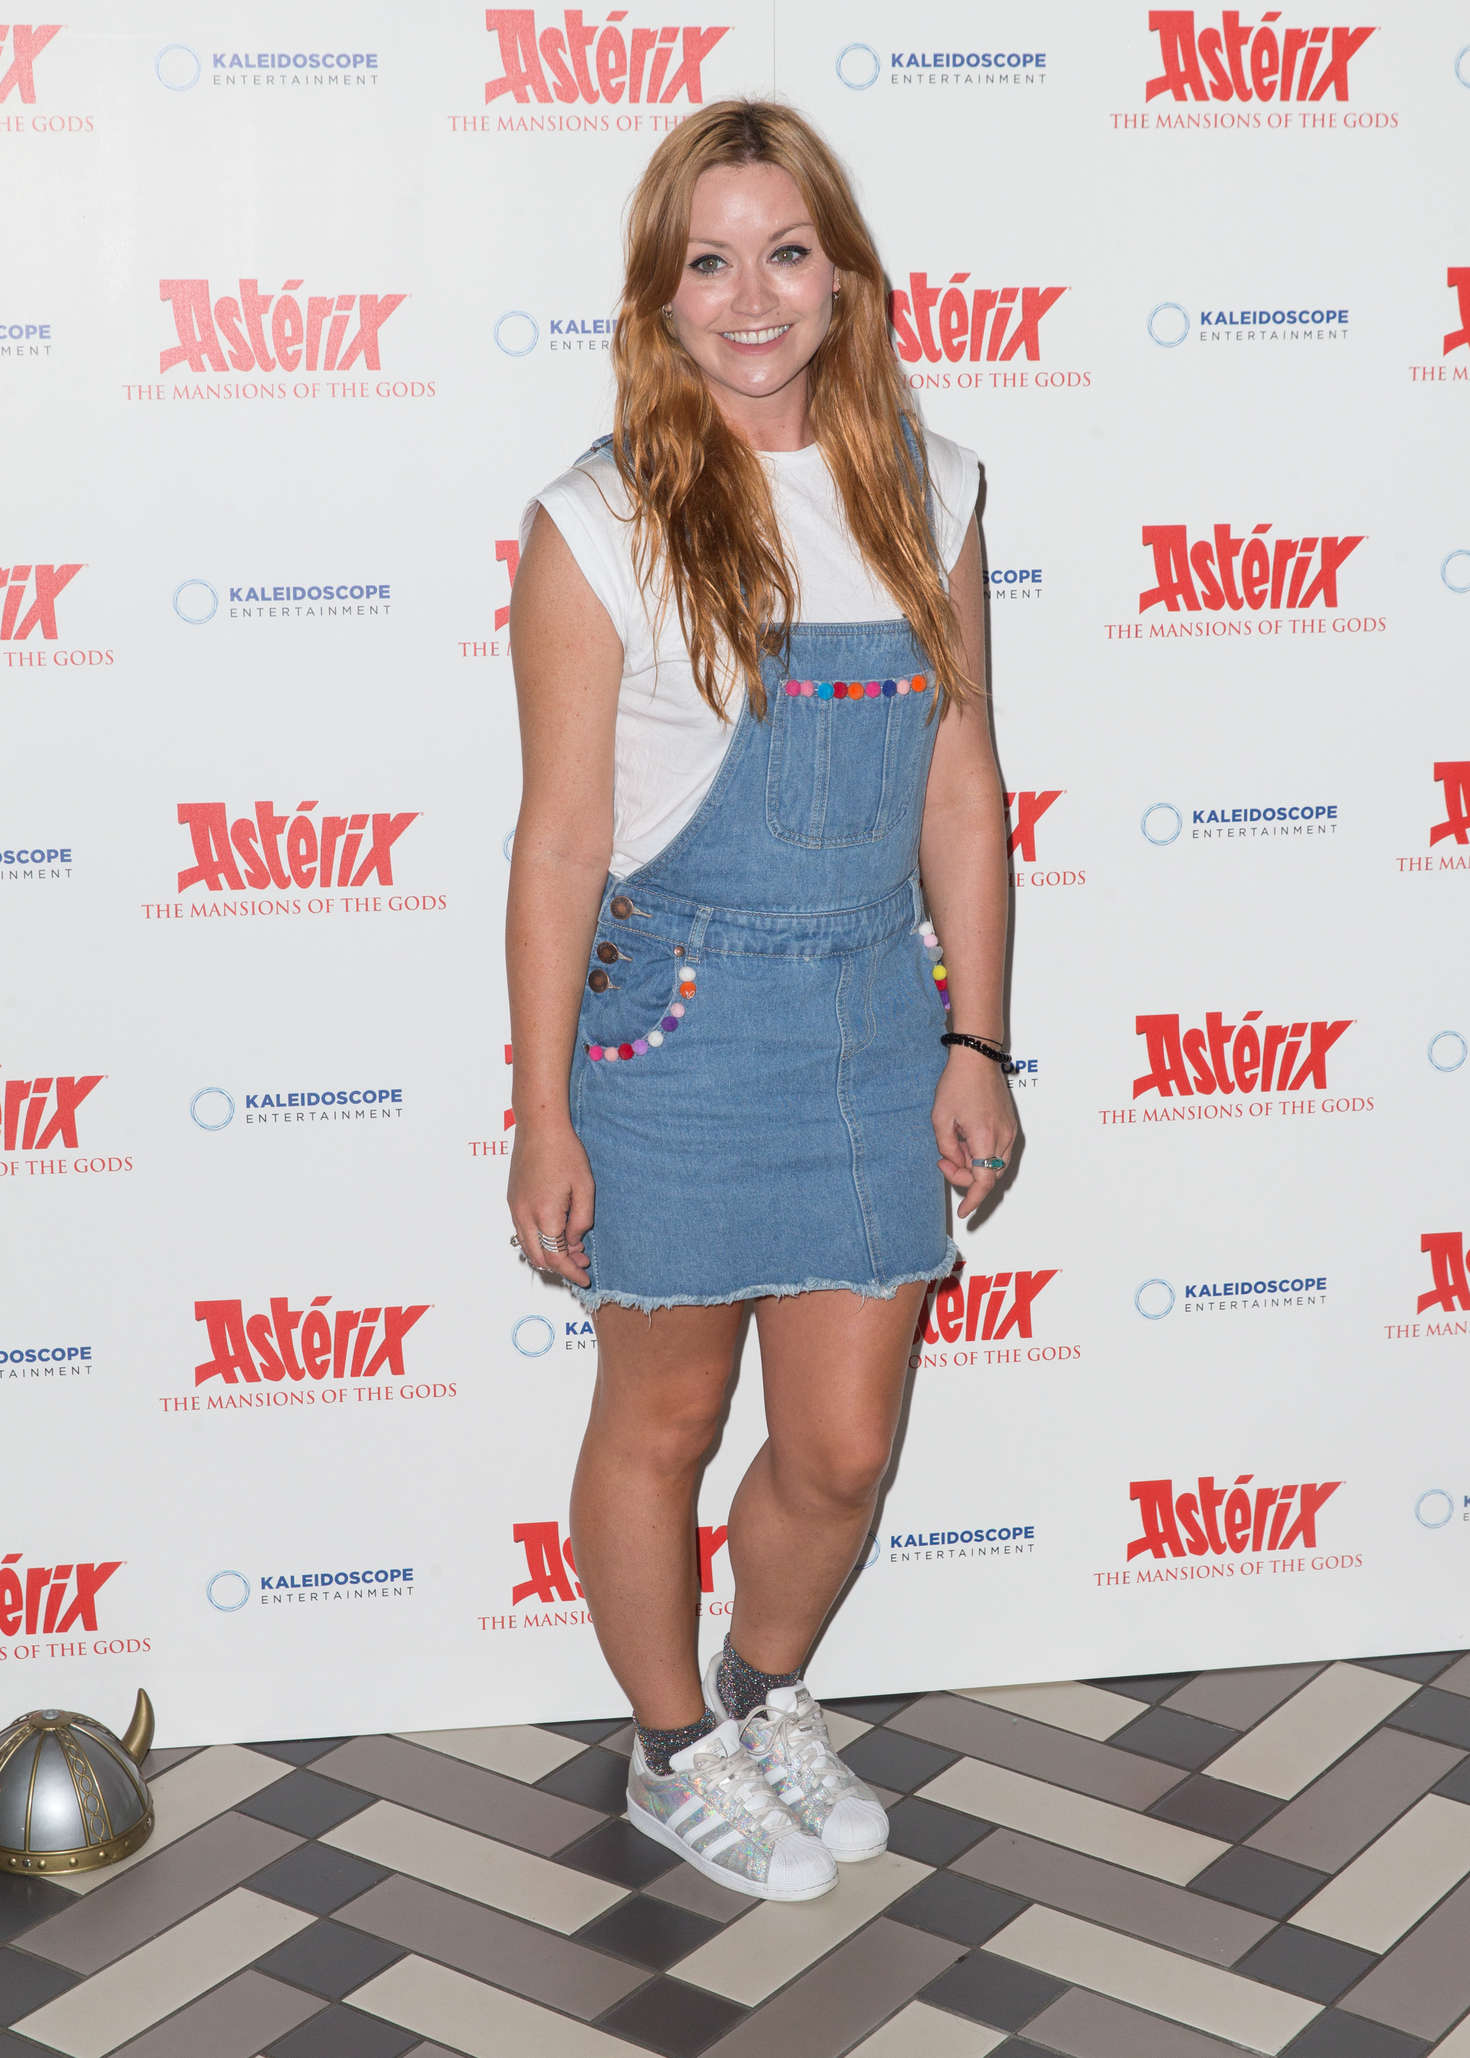 Arielle Free: Asterix The Mansions of The Gods UK Screening -06 - Full Size